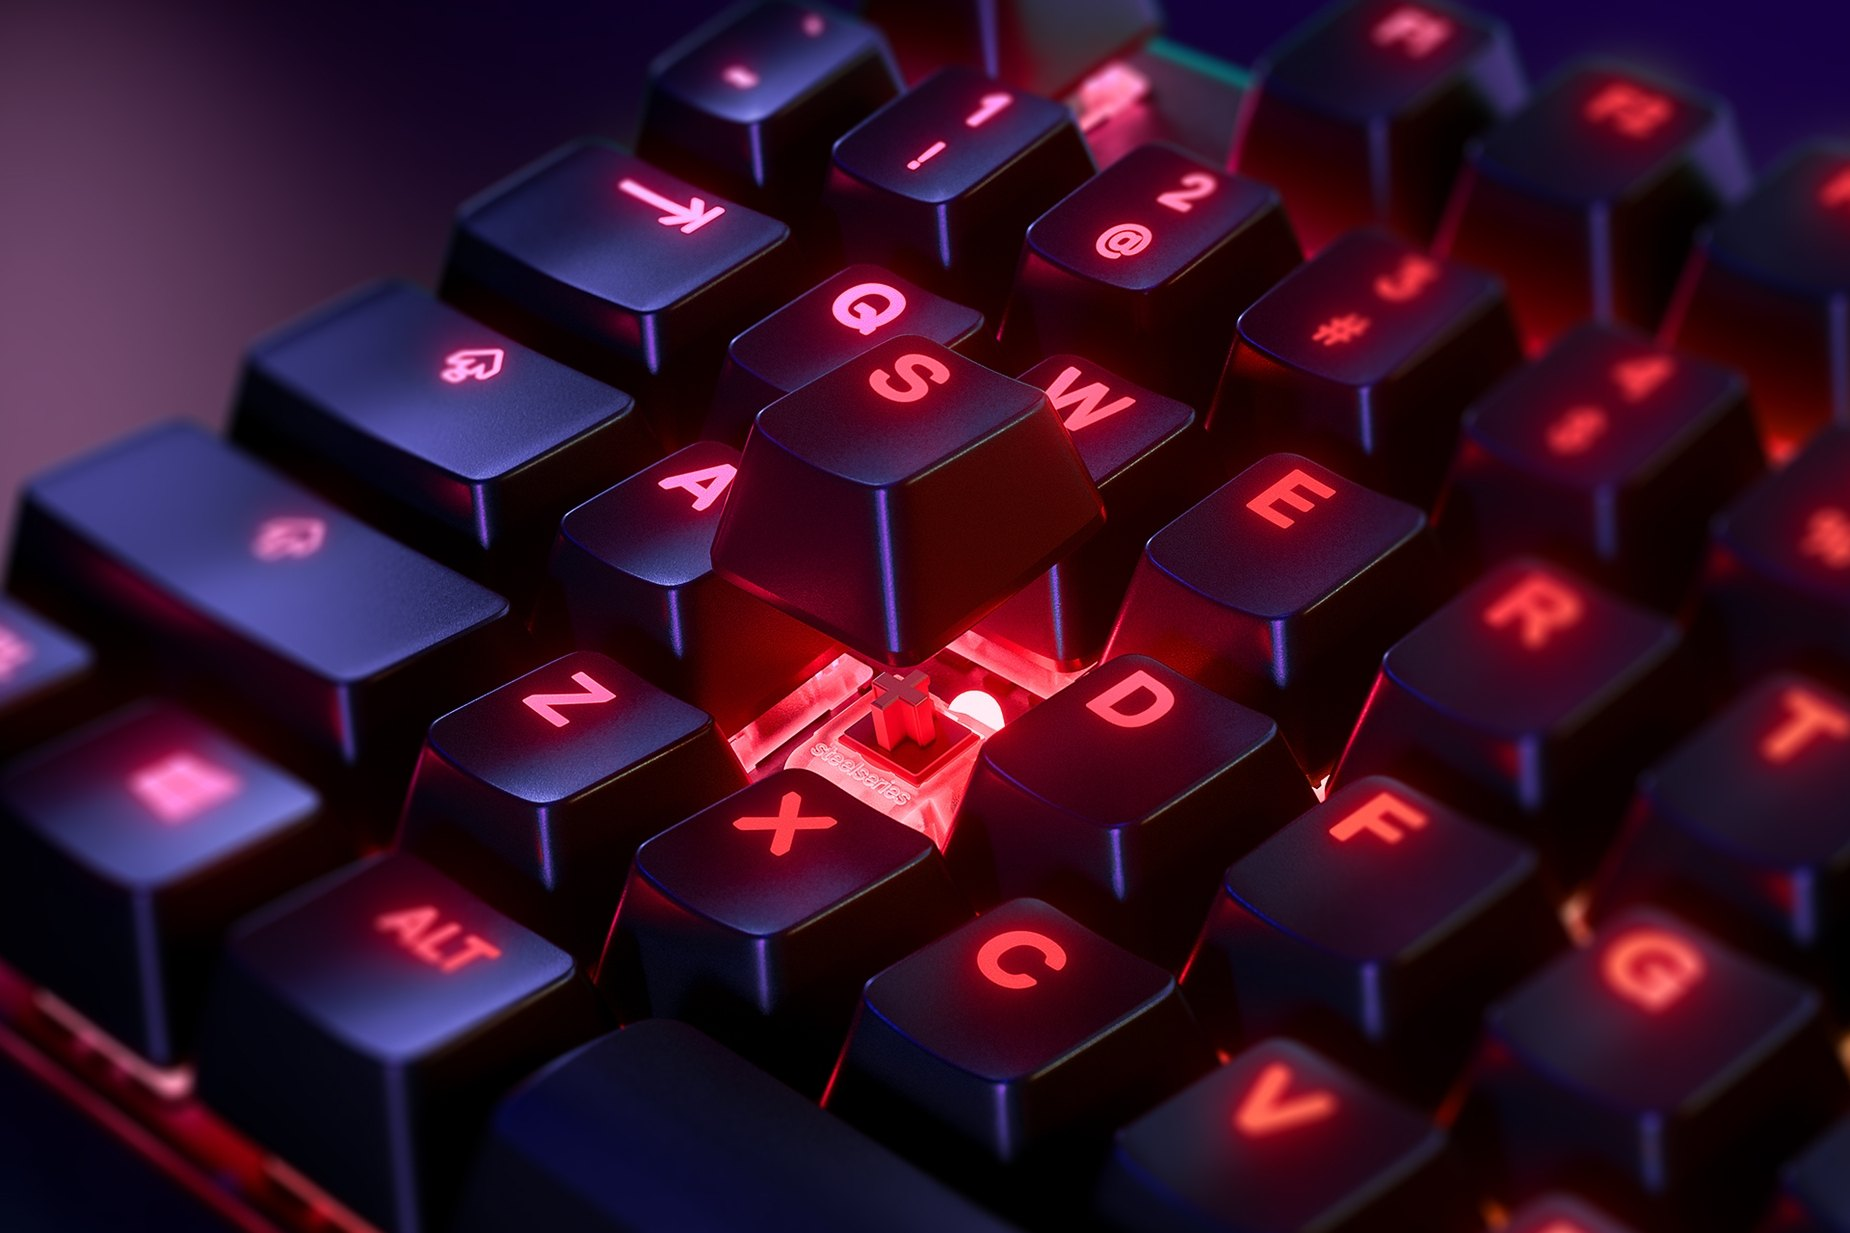 Zoomed in view of a single key on the Japanese - Apex 7 TKL (Red Switch) gaming keyboard, the key is raised up to show the SteelSeries QX2 Mechanical RGB Switch underneath